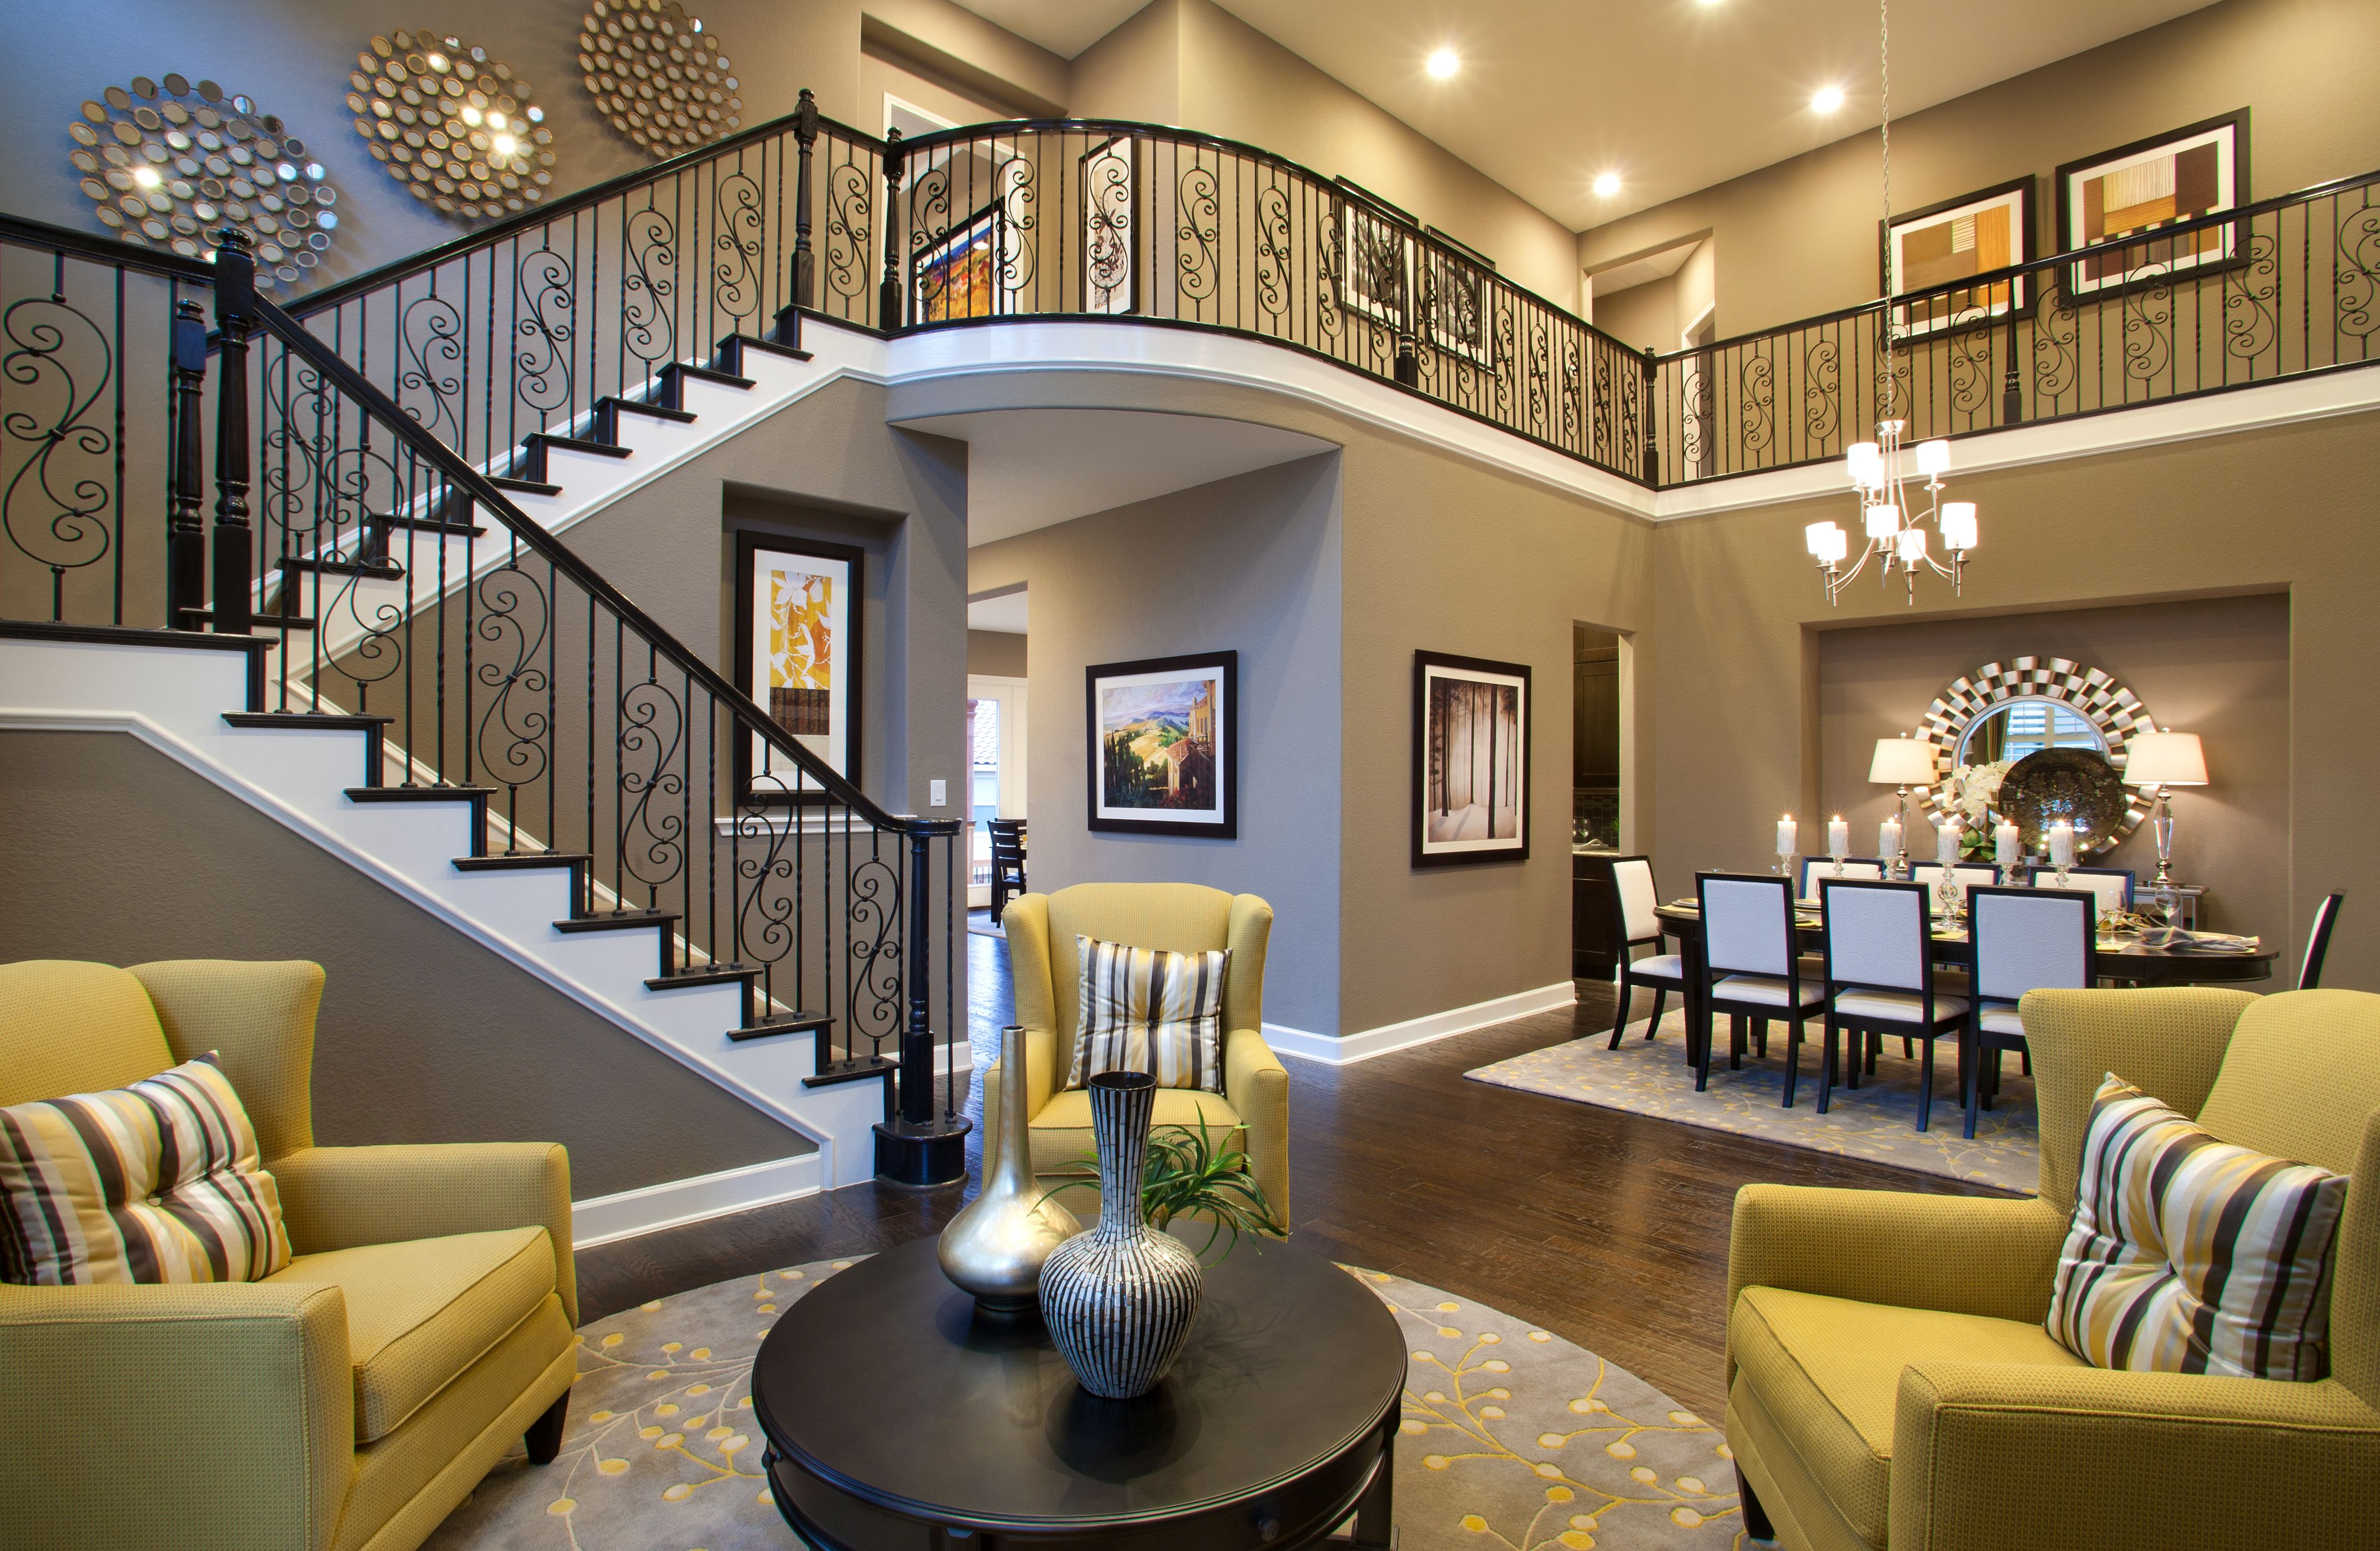 captivating stair living room dining | The Barrington - Living, Dining & Stairs | Home, House ...